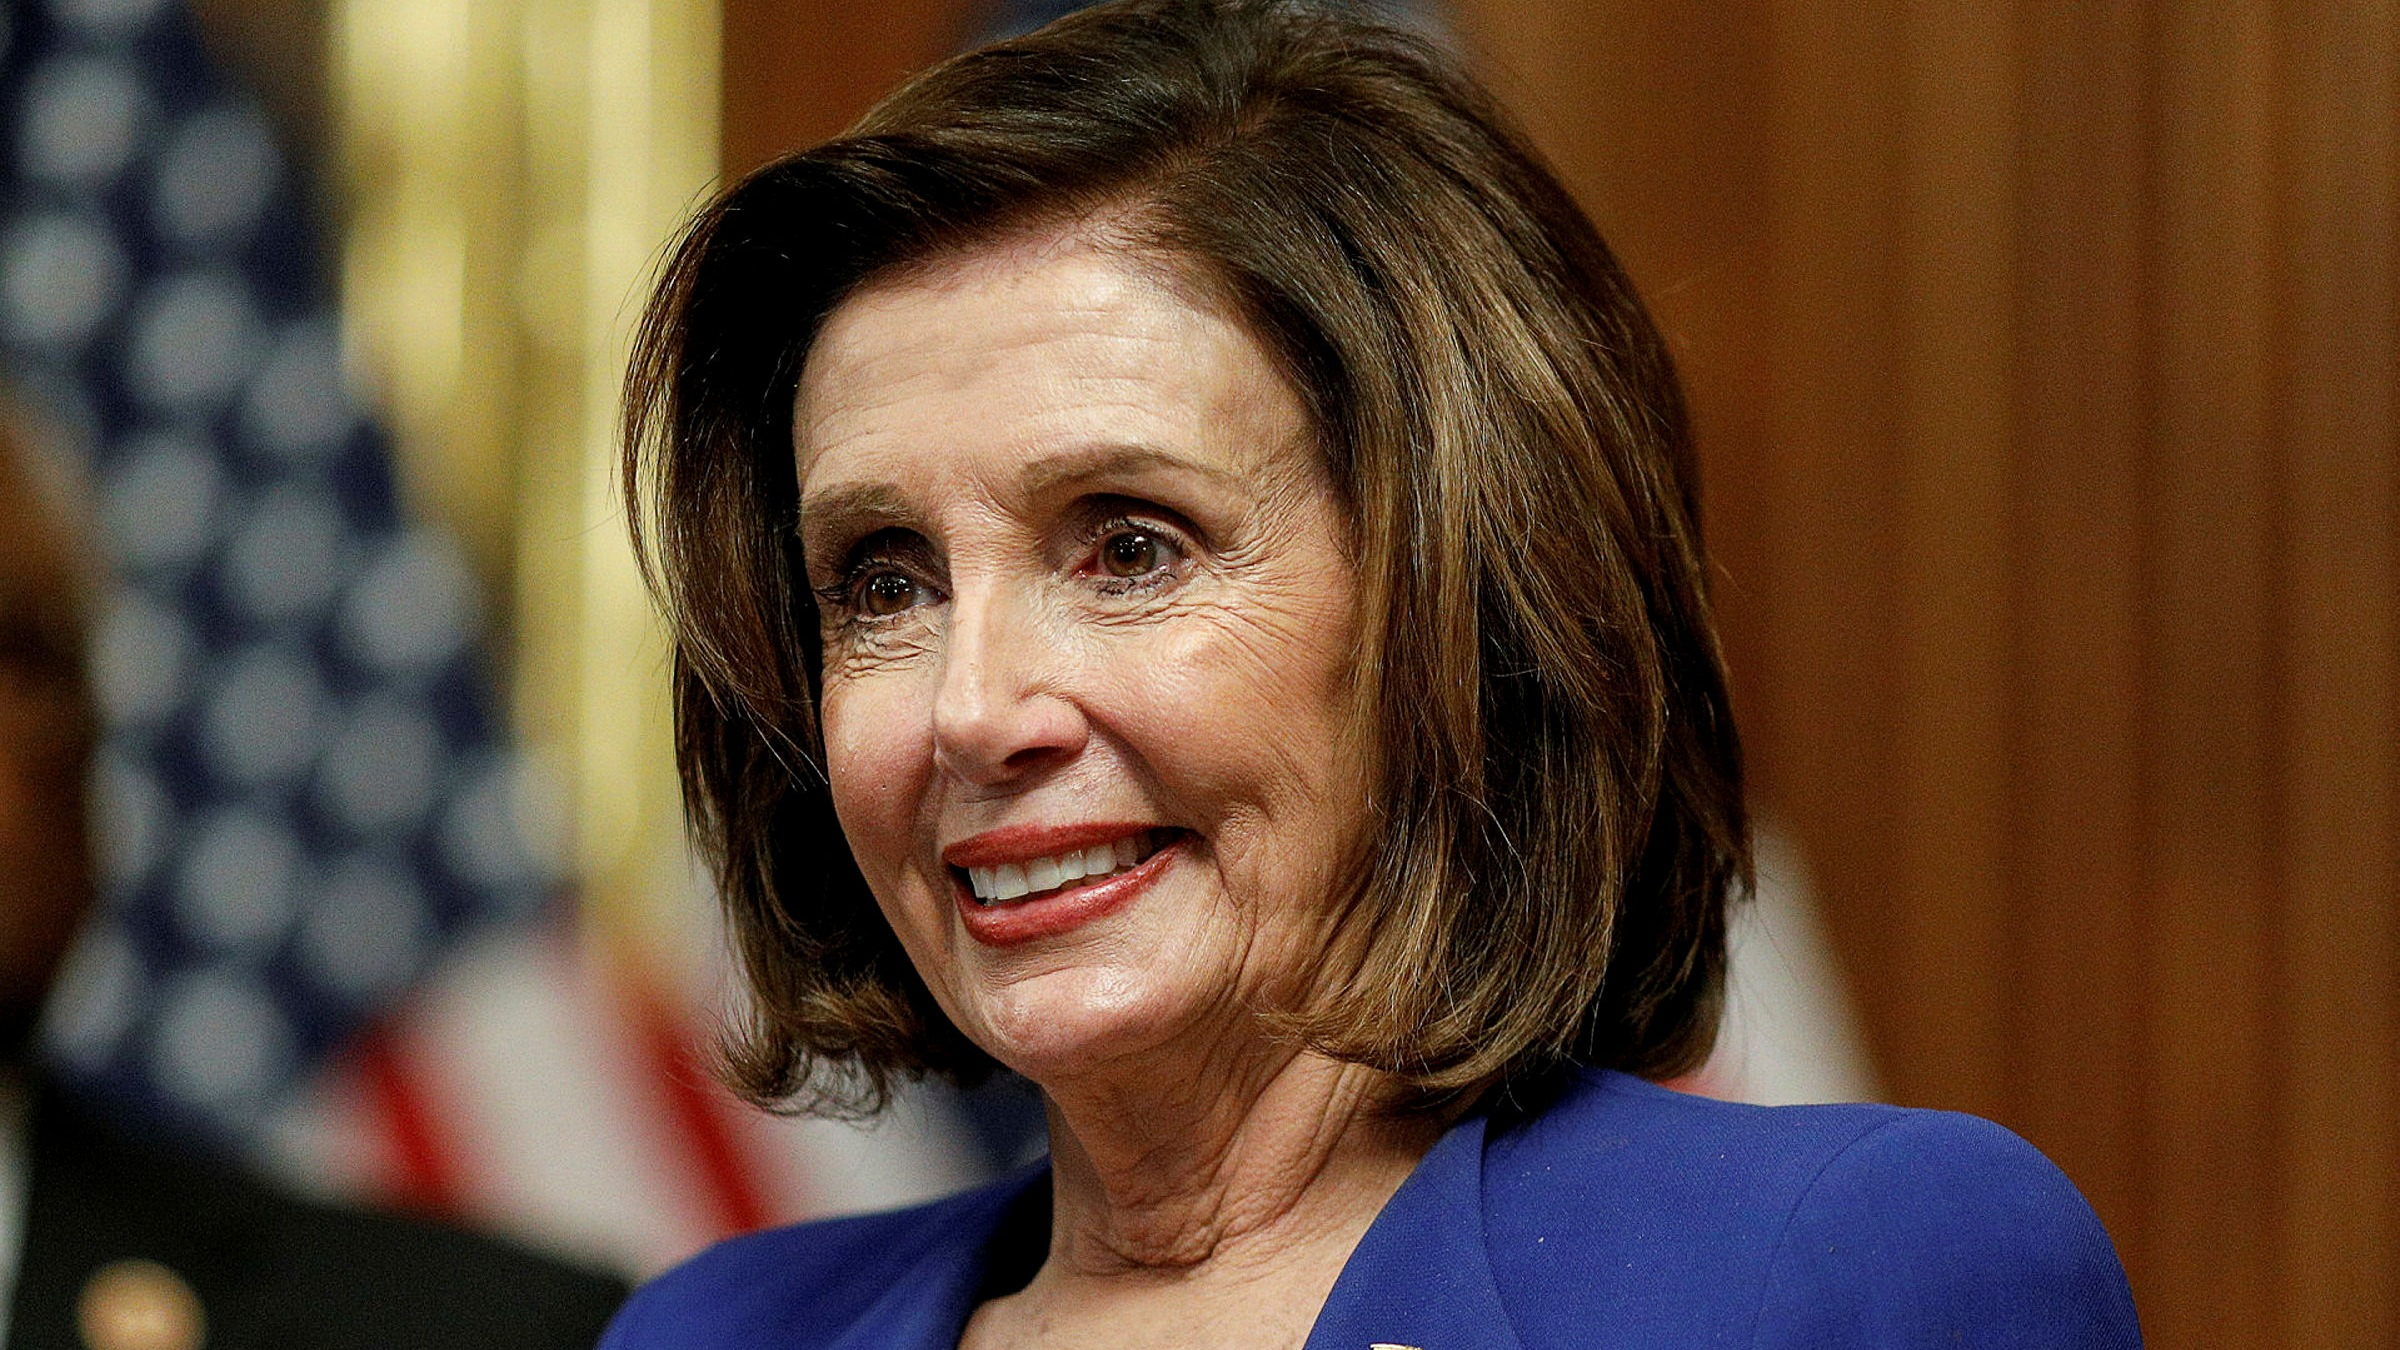 Nancy Pelosi Wins Speaker of The House For Fourth Time in a Row